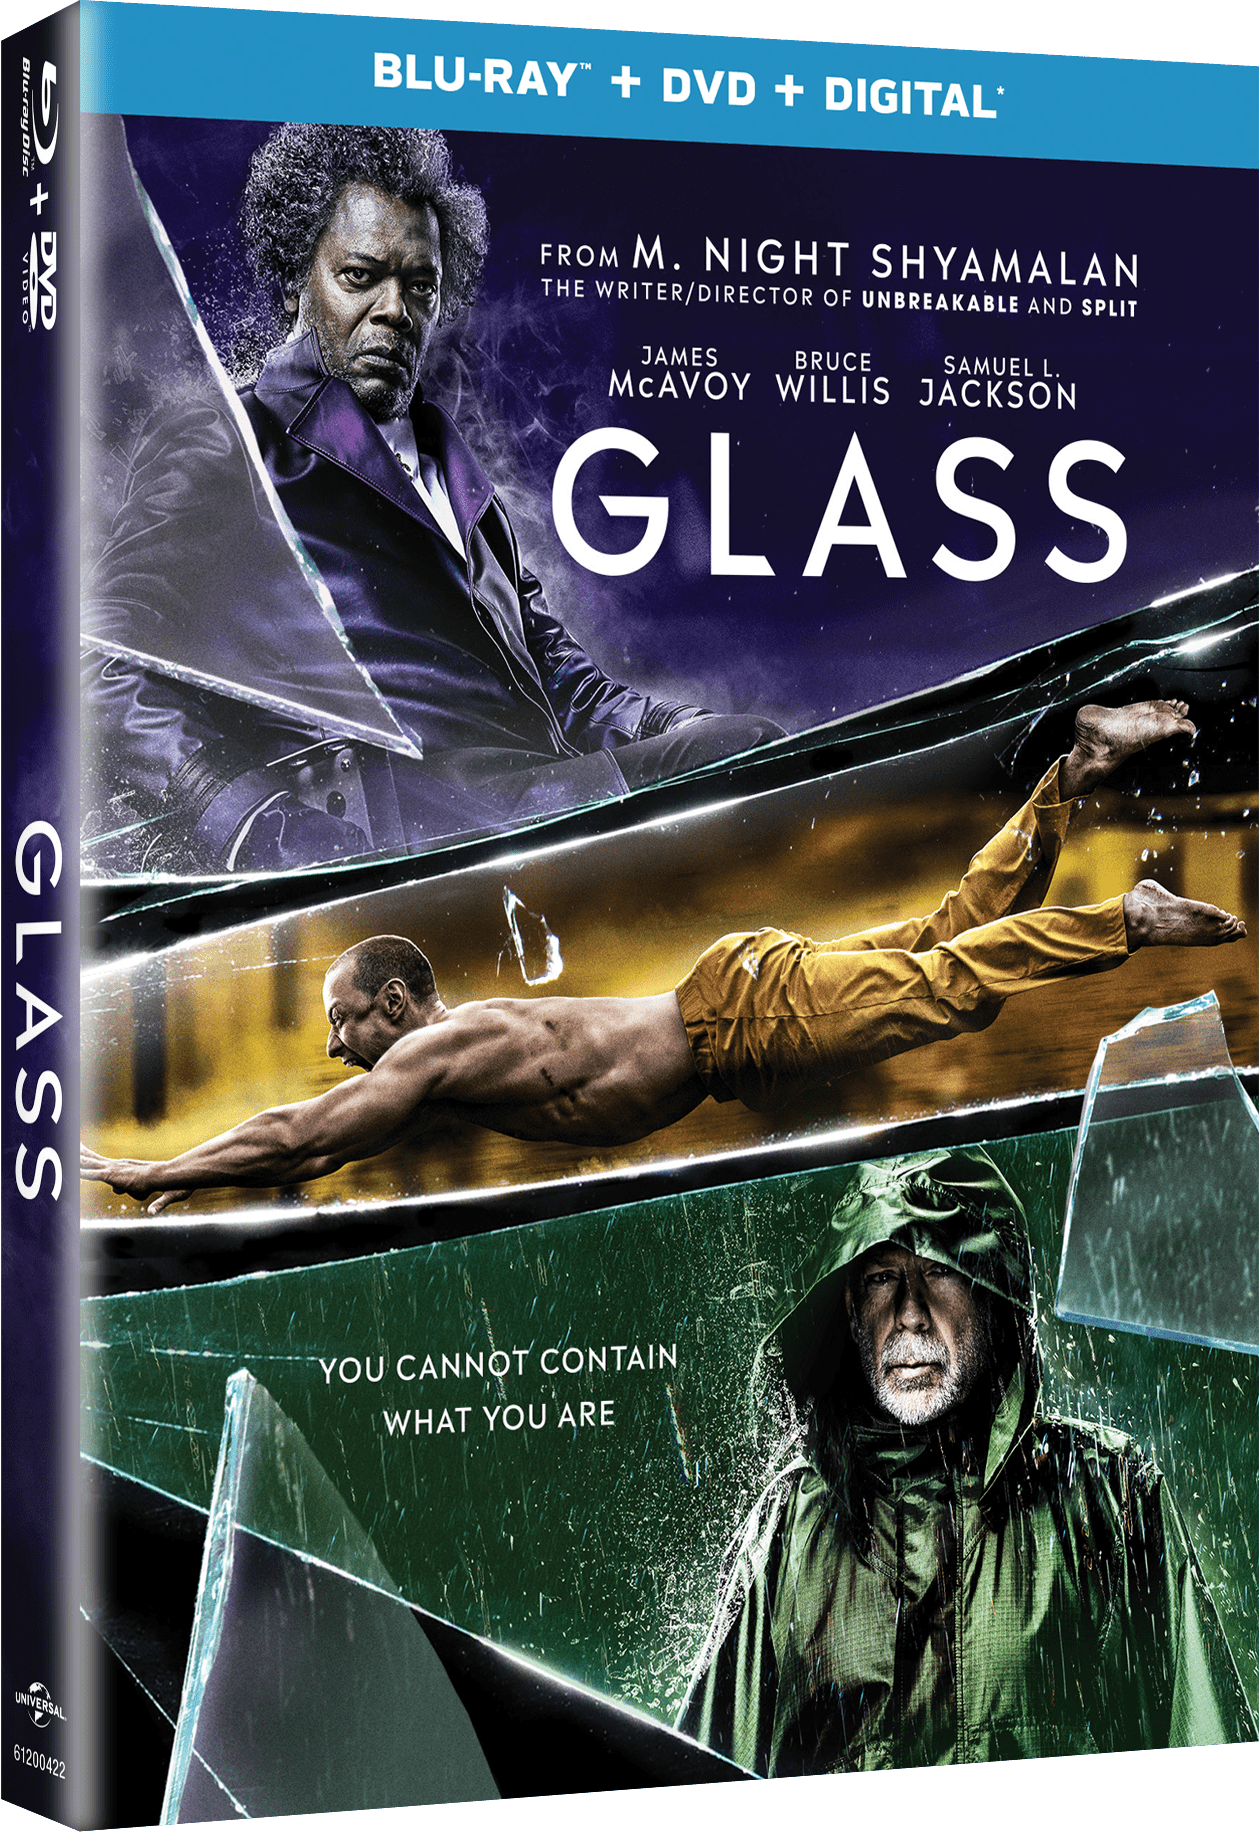 GLASS 2019 - Box Art English